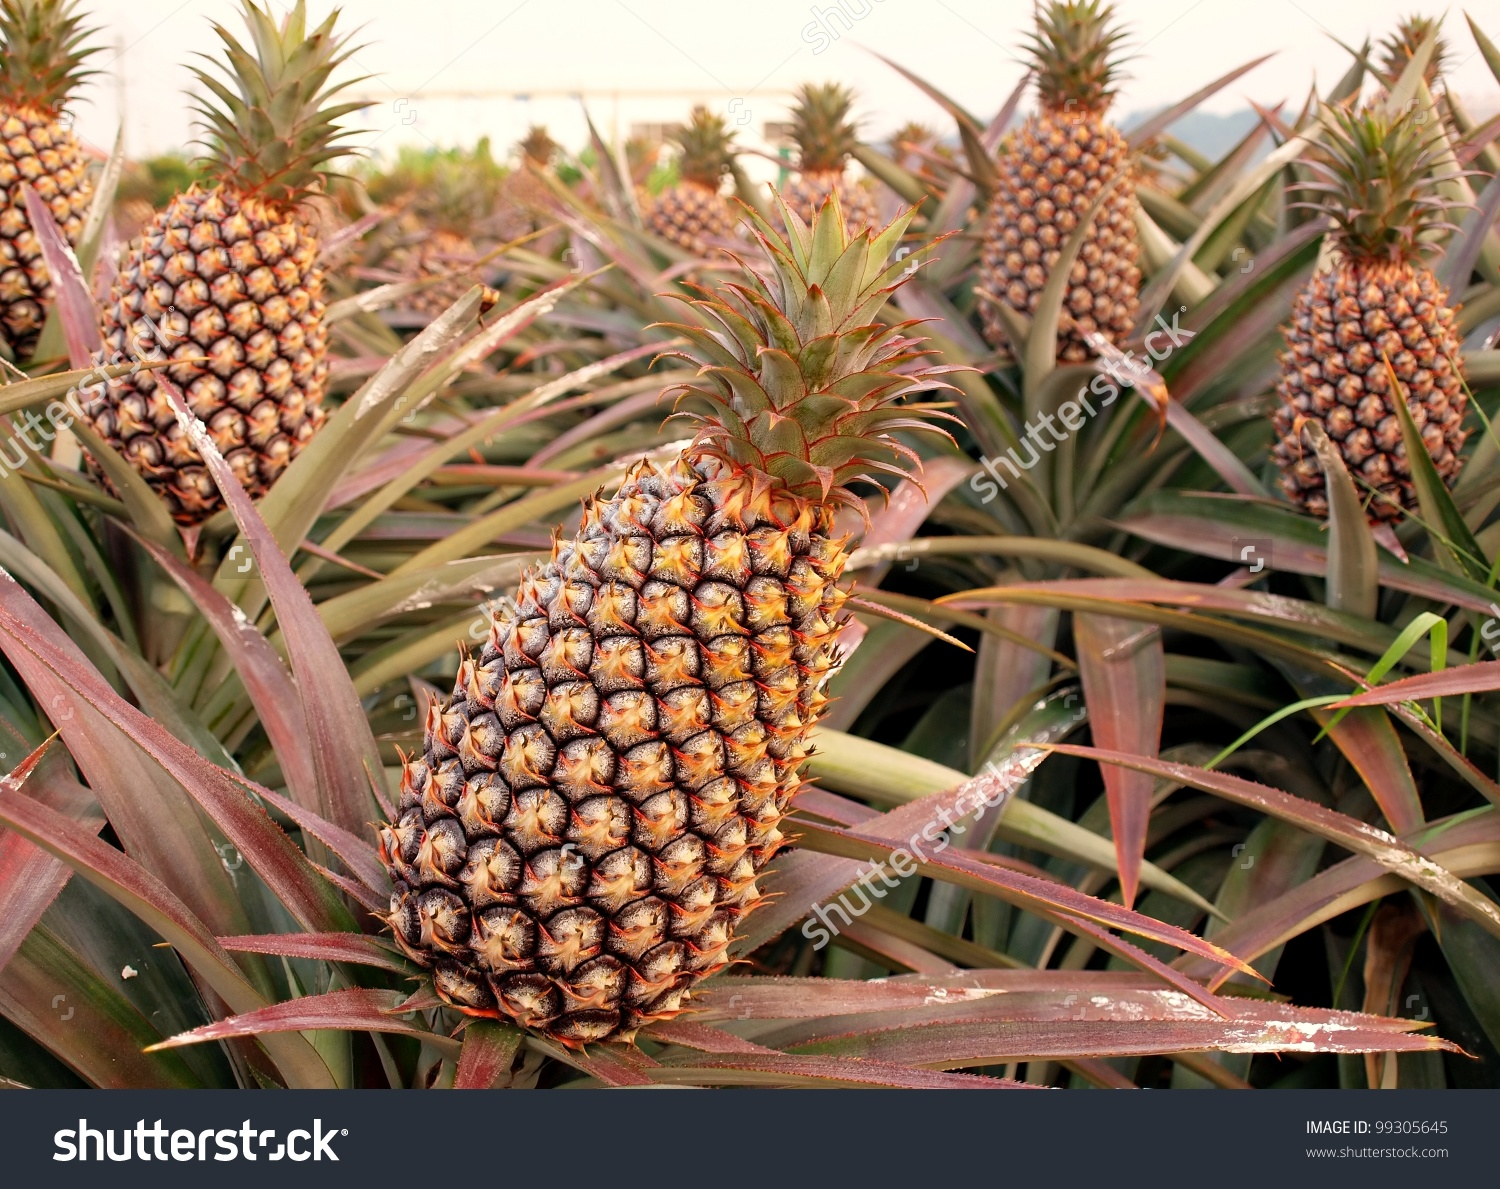 Pineapple plant clipart 20 free Cliparts | Download images ...